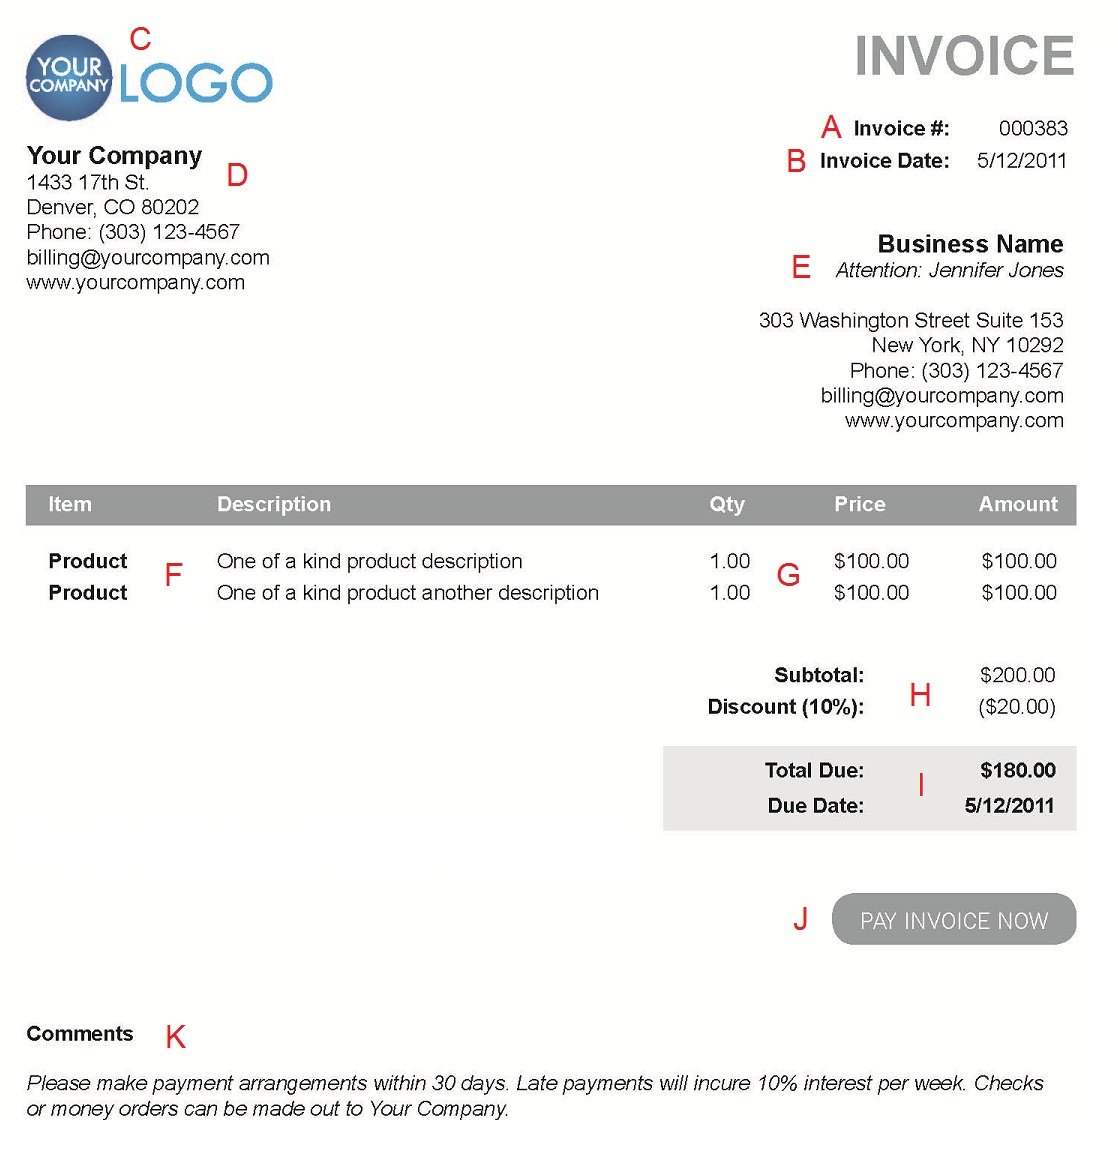 Coolmathgamesus  Personable The  Different Sections Of An Electronic Payment Invoice With Remarkable A  With Captivating Commercail Invoice Also Payment Without Invoice In Addition Company Invoice Forms And Template Tax Invoice As Well As Ms Word Invoice Template Mac Additionally Cash Invoice Definition From Paysimplecom With Coolmathgamesus  Remarkable The  Different Sections Of An Electronic Payment Invoice With Captivating A  And Personable Commercail Invoice Also Payment Without Invoice In Addition Company Invoice Forms From Paysimplecom